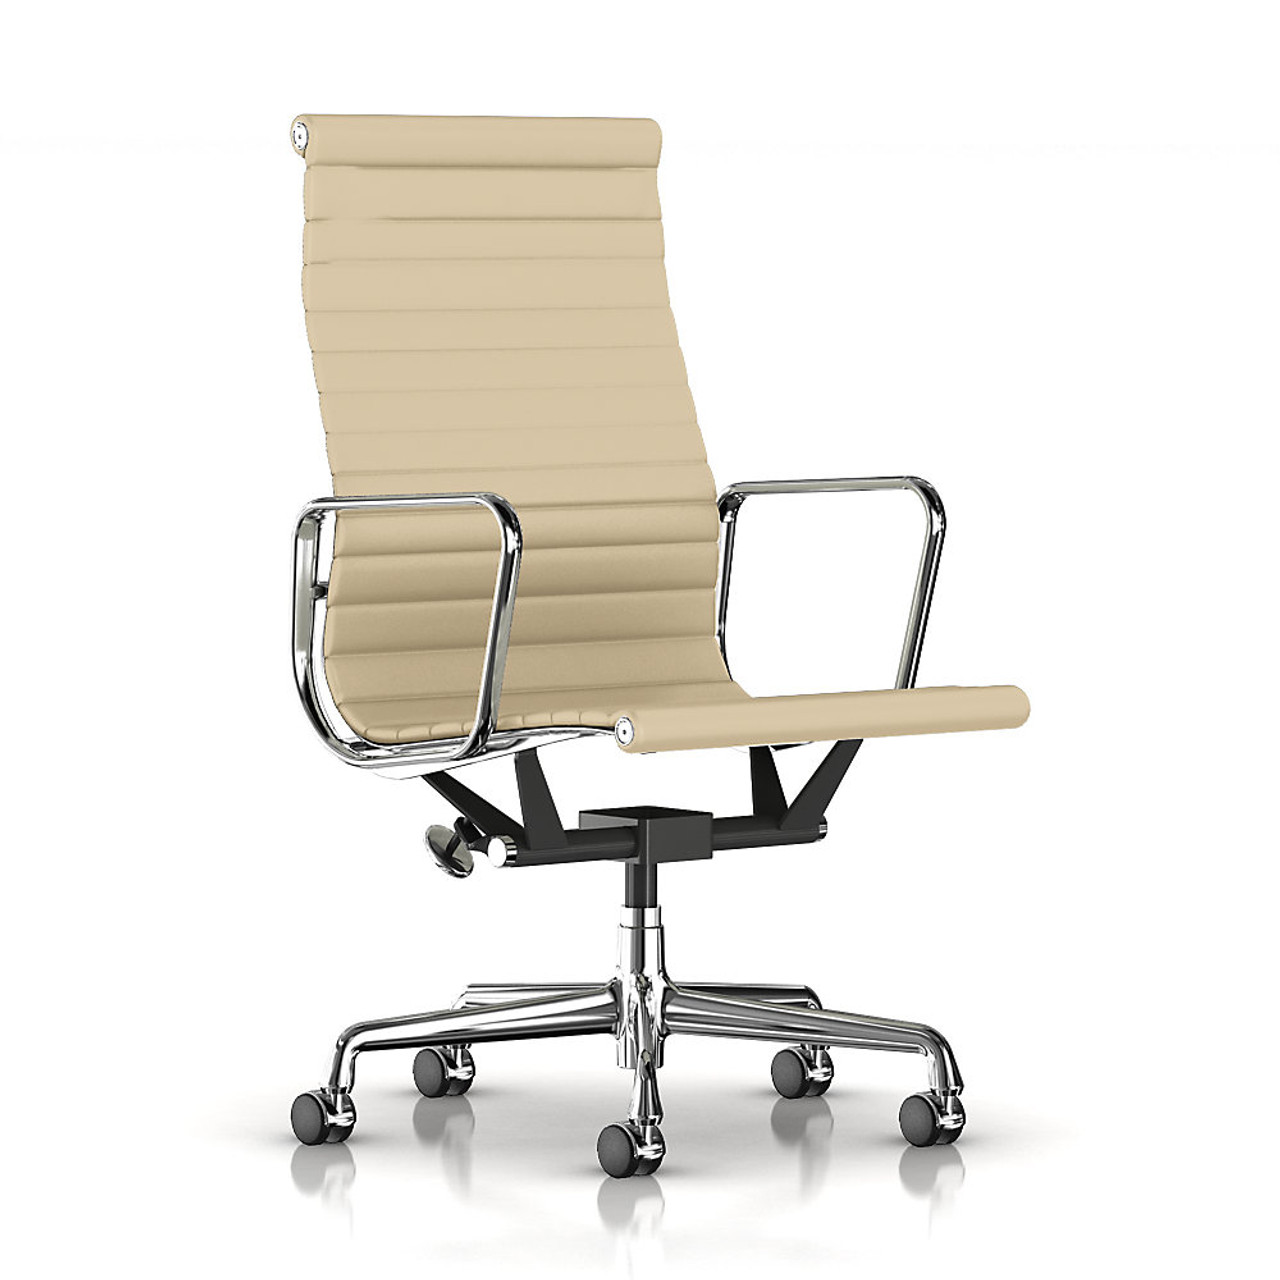 Eames Aluminum Executive Chair - Open Box